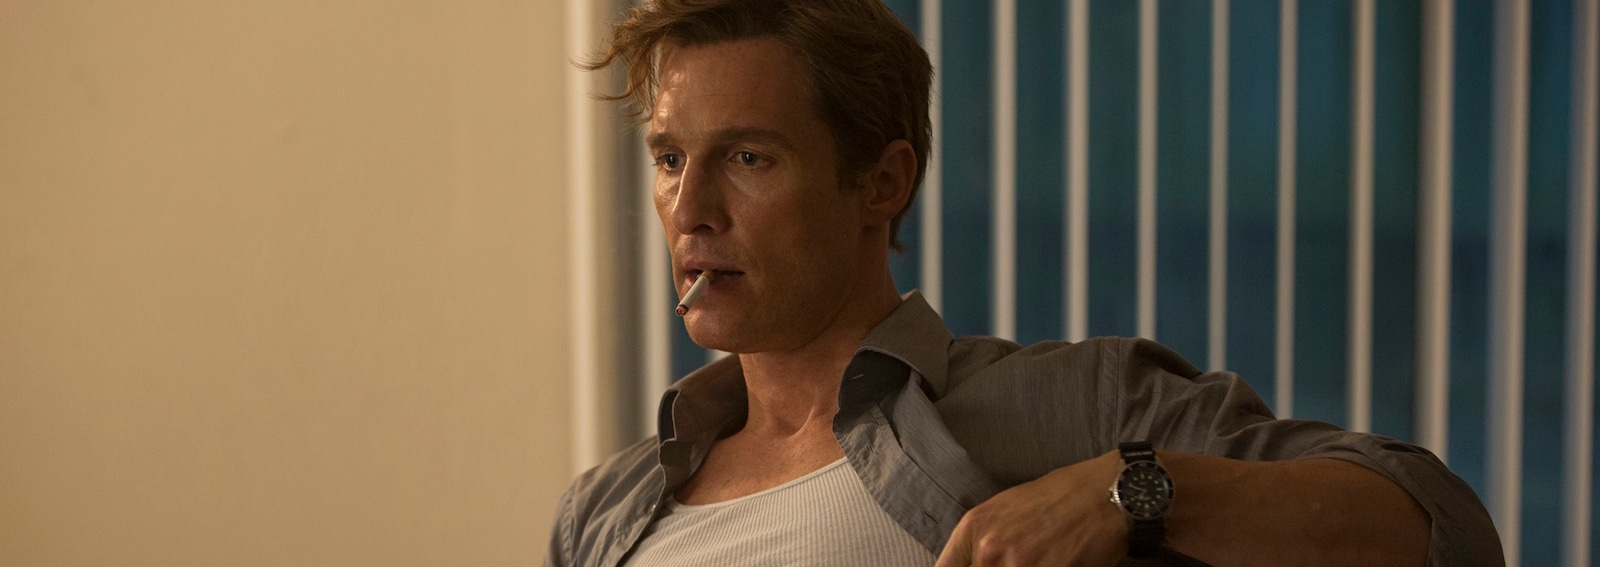 Matthew McConaughey as Rust Cohle, True Detective Series 1, Episode 4